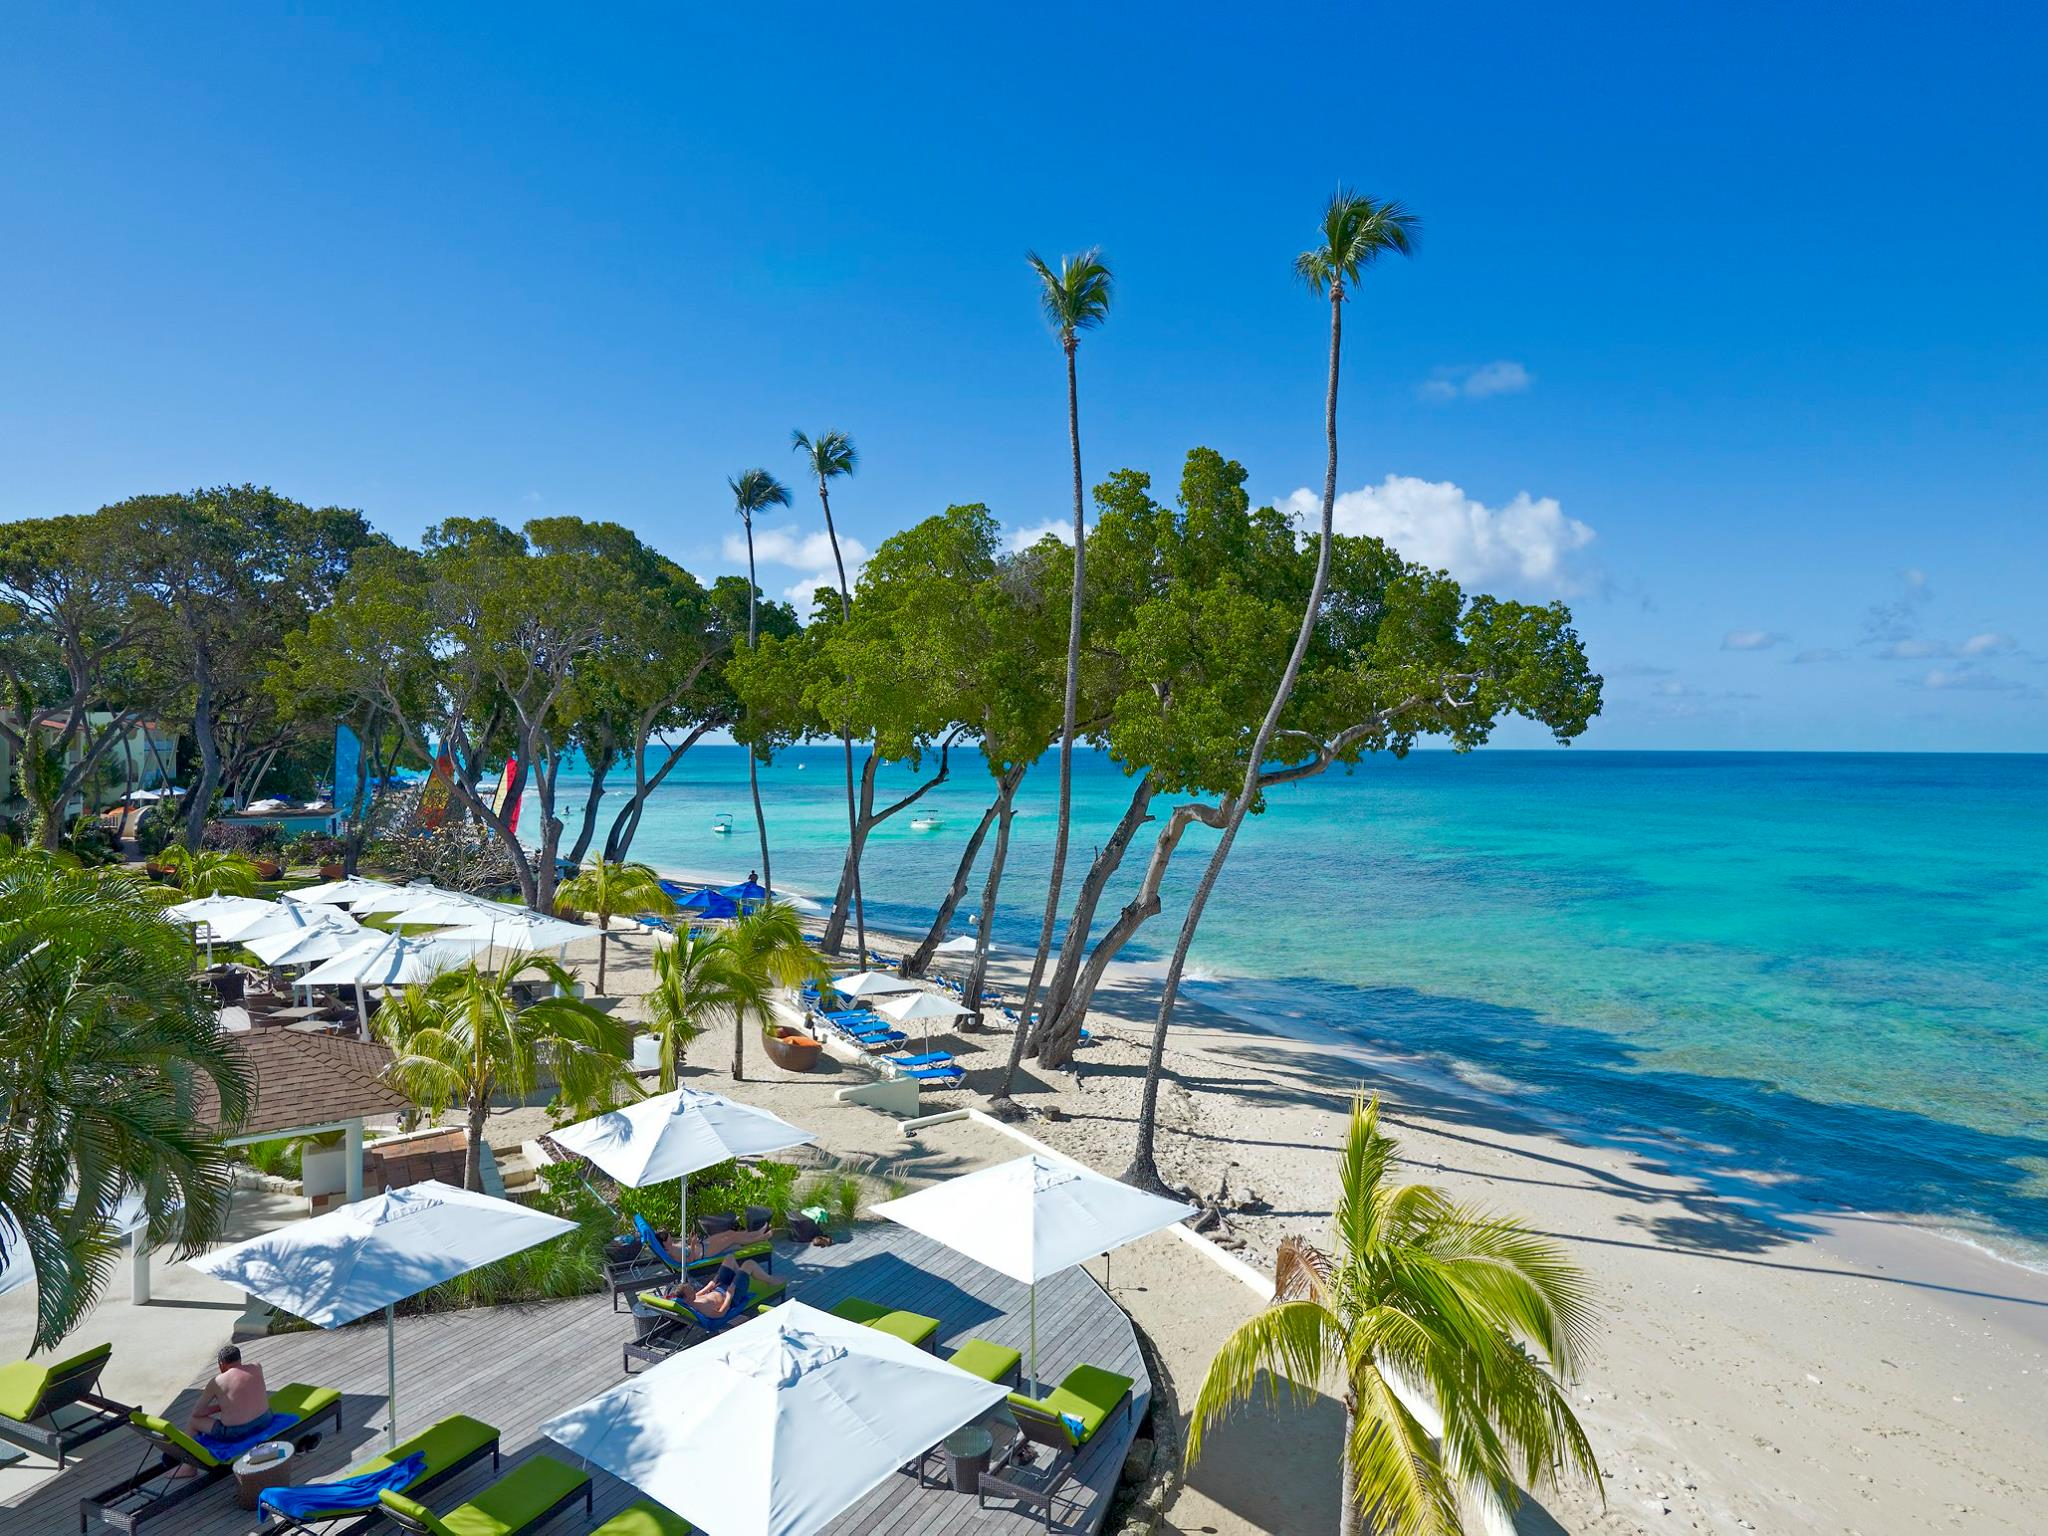 the hotel of barbados - photo #25